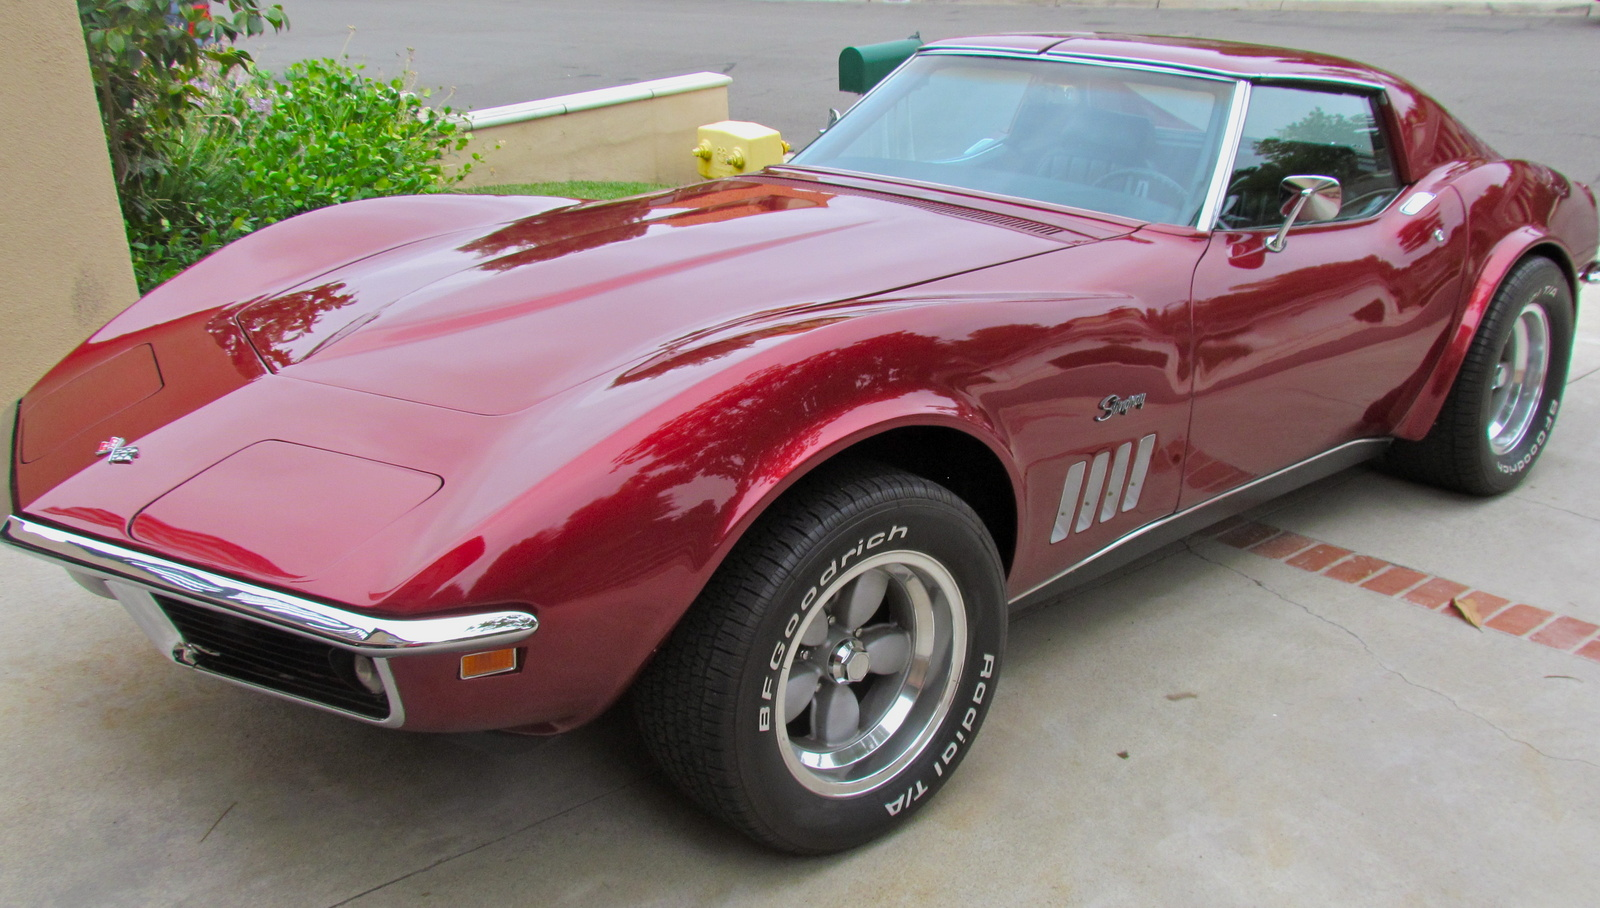 chevrolet corvette questions what is a 1975 automatic worth 124 000 needs paint job new. Black Bedroom Furniture Sets. Home Design Ideas